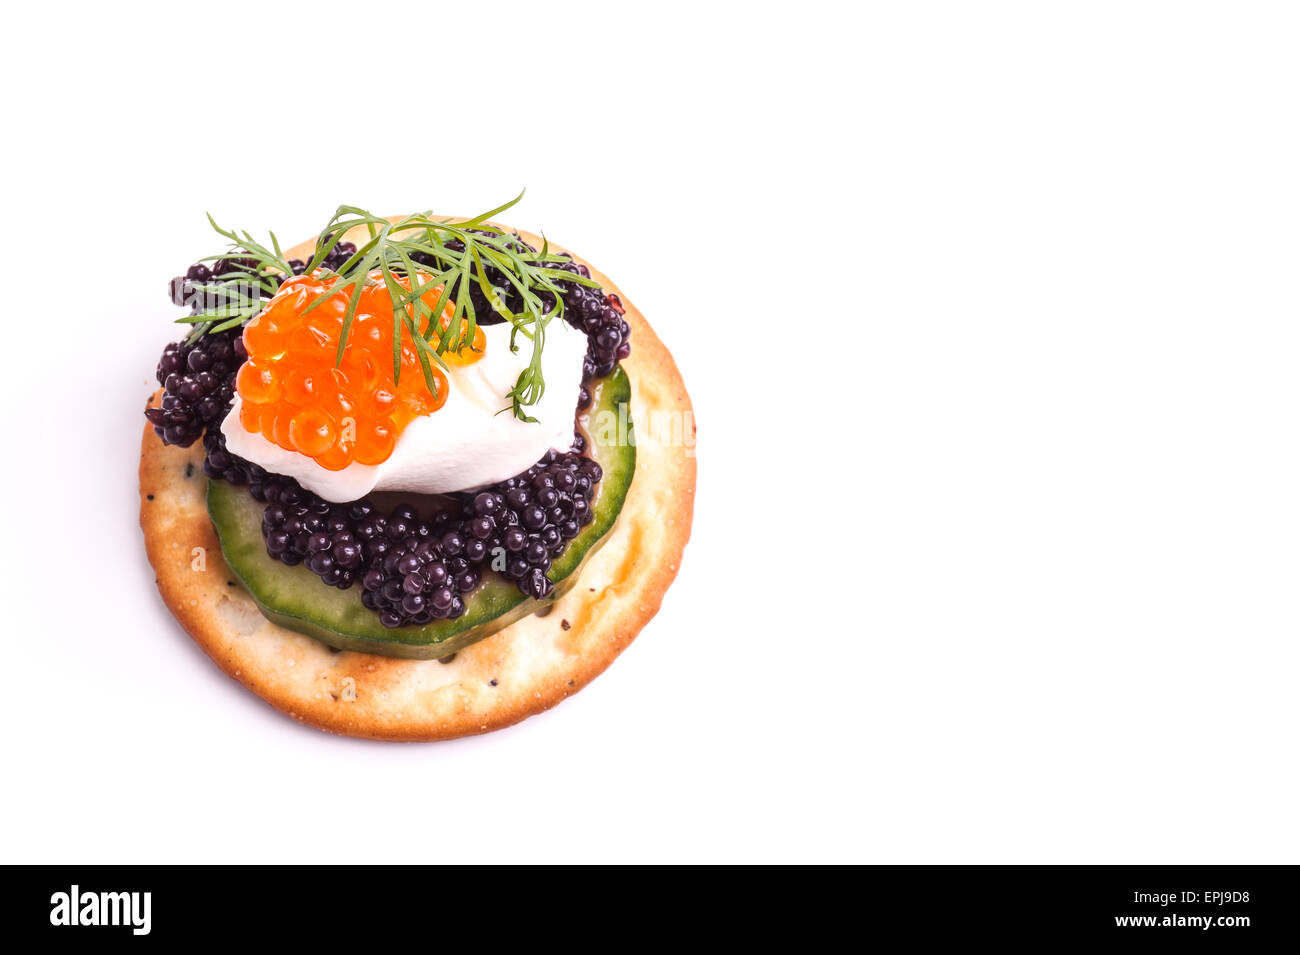 Caviar Appetizer served on crackers isolated on white - Stock Image